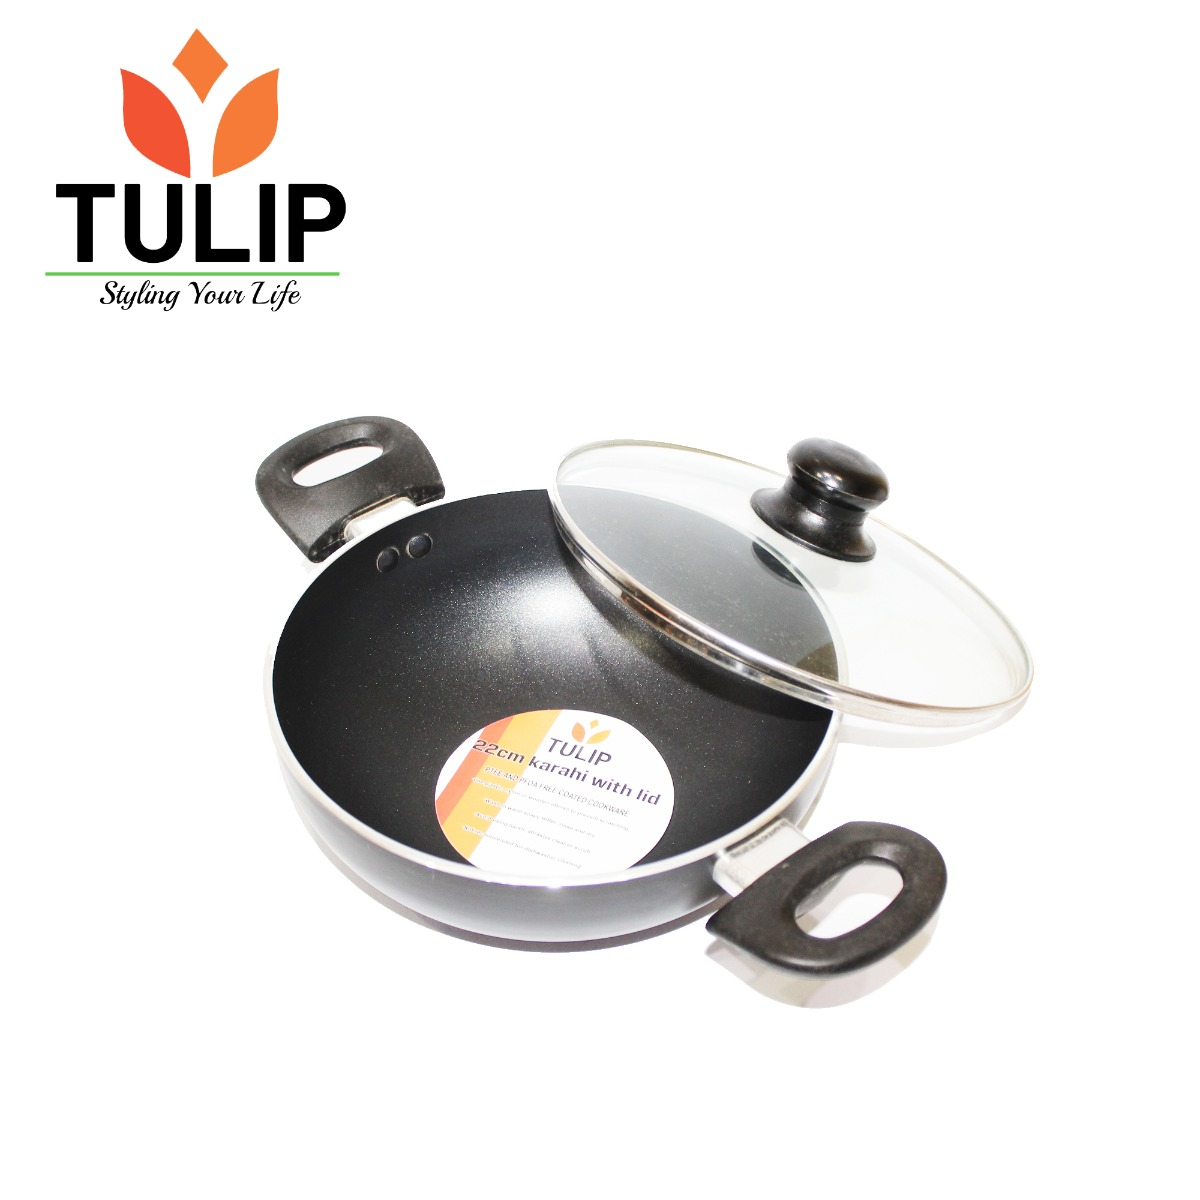 TULIP 24CM Non Stick Kadhai With Glass Lid - Black